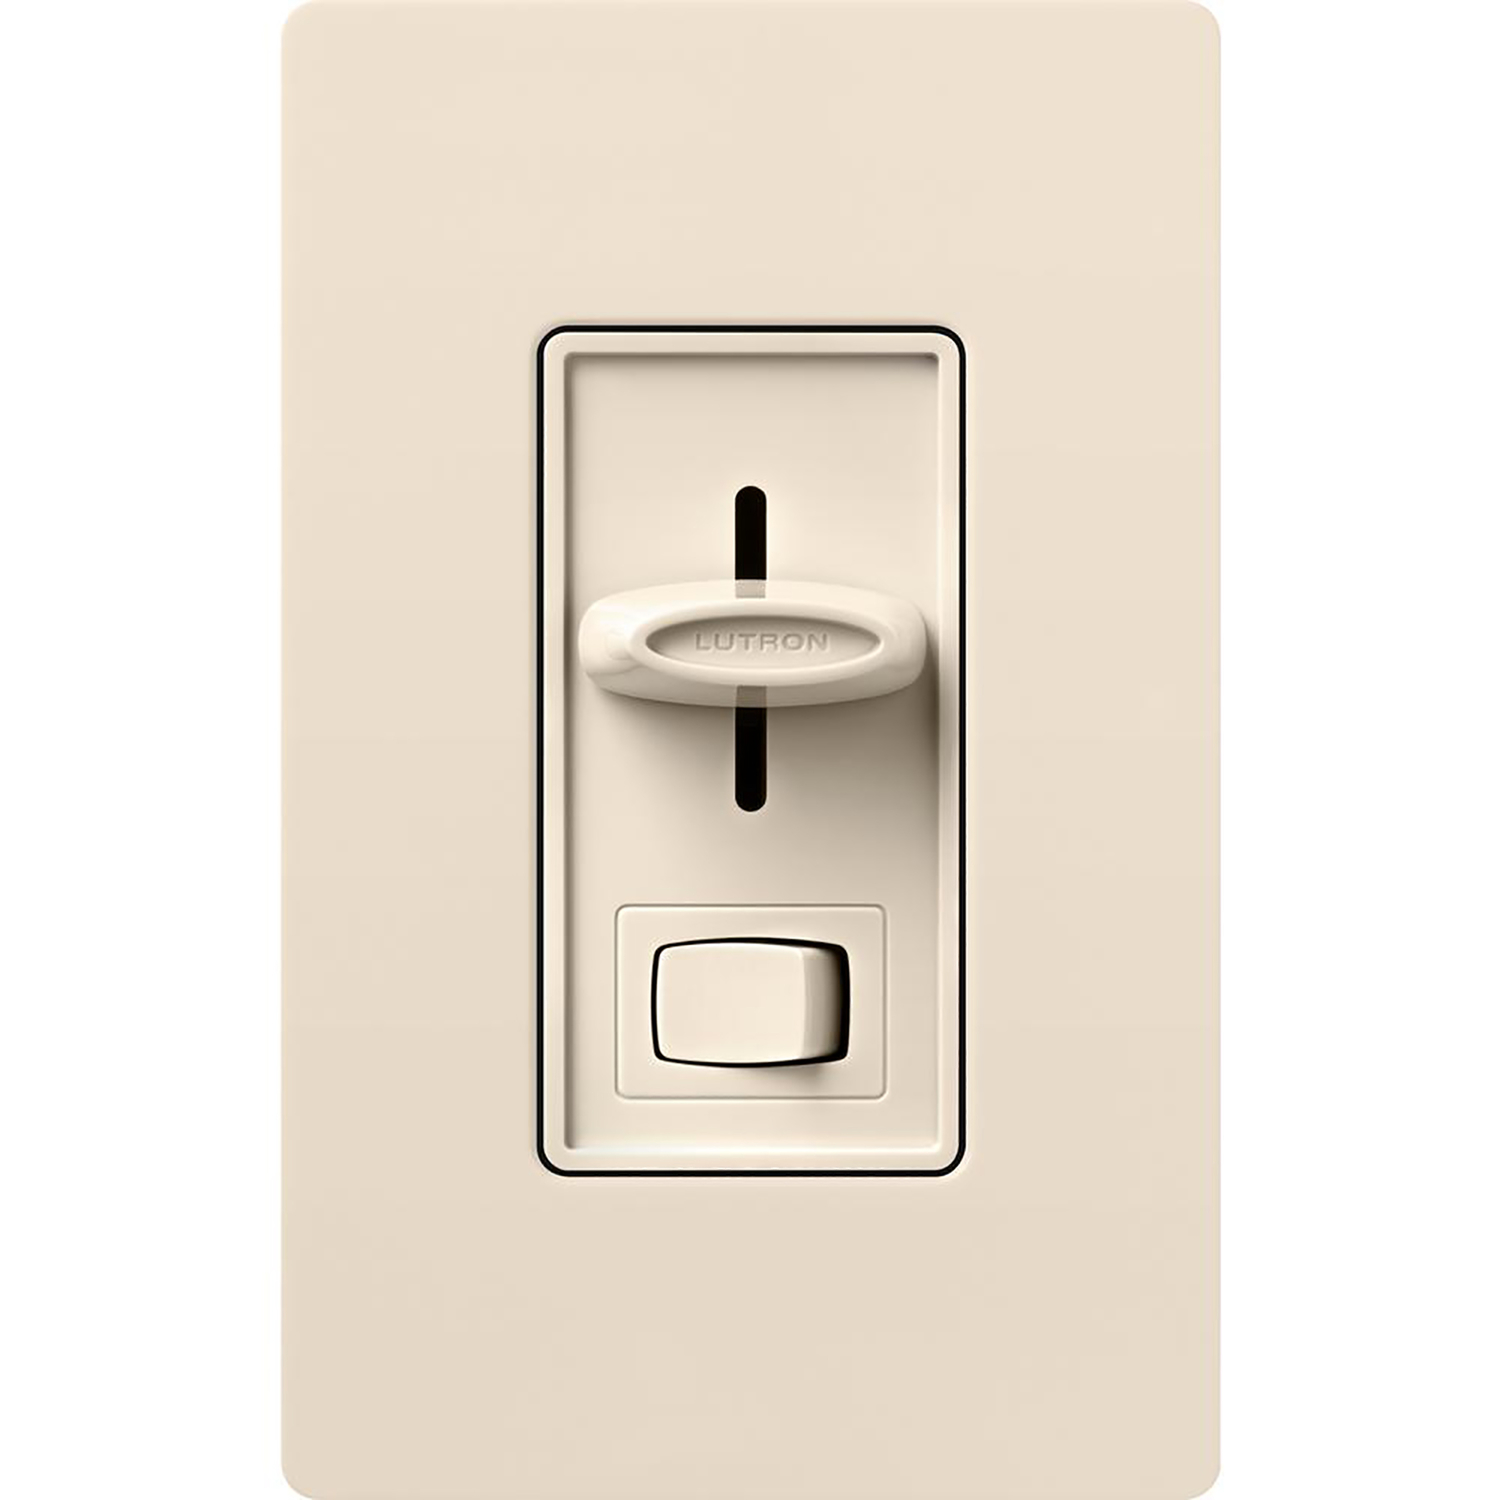 Lutron Skylark Light Almond 3 Way Dimmer Switch 150 Watts Ace Hardware And